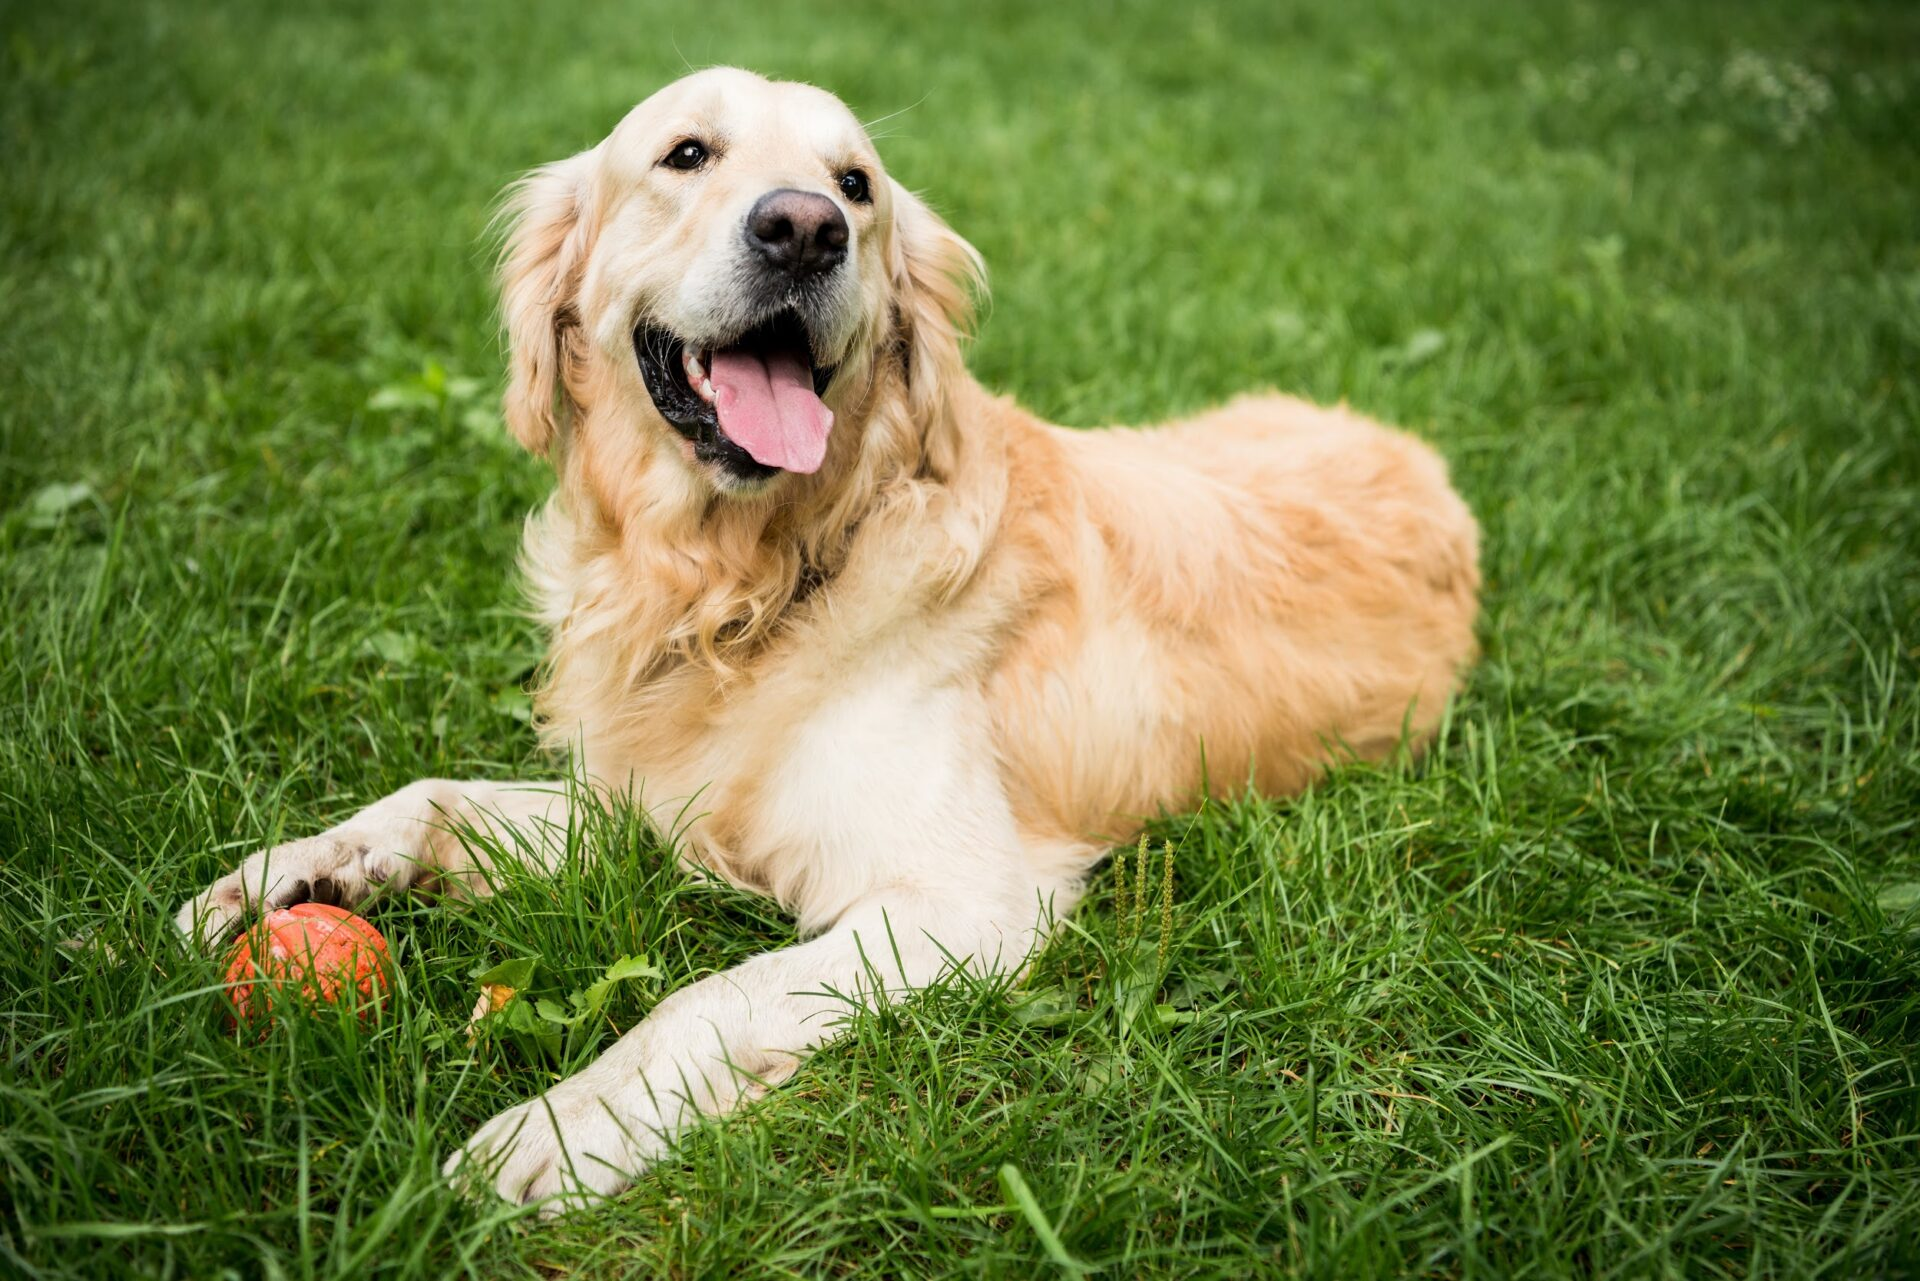 The Best Dog Parks in Los Angeles